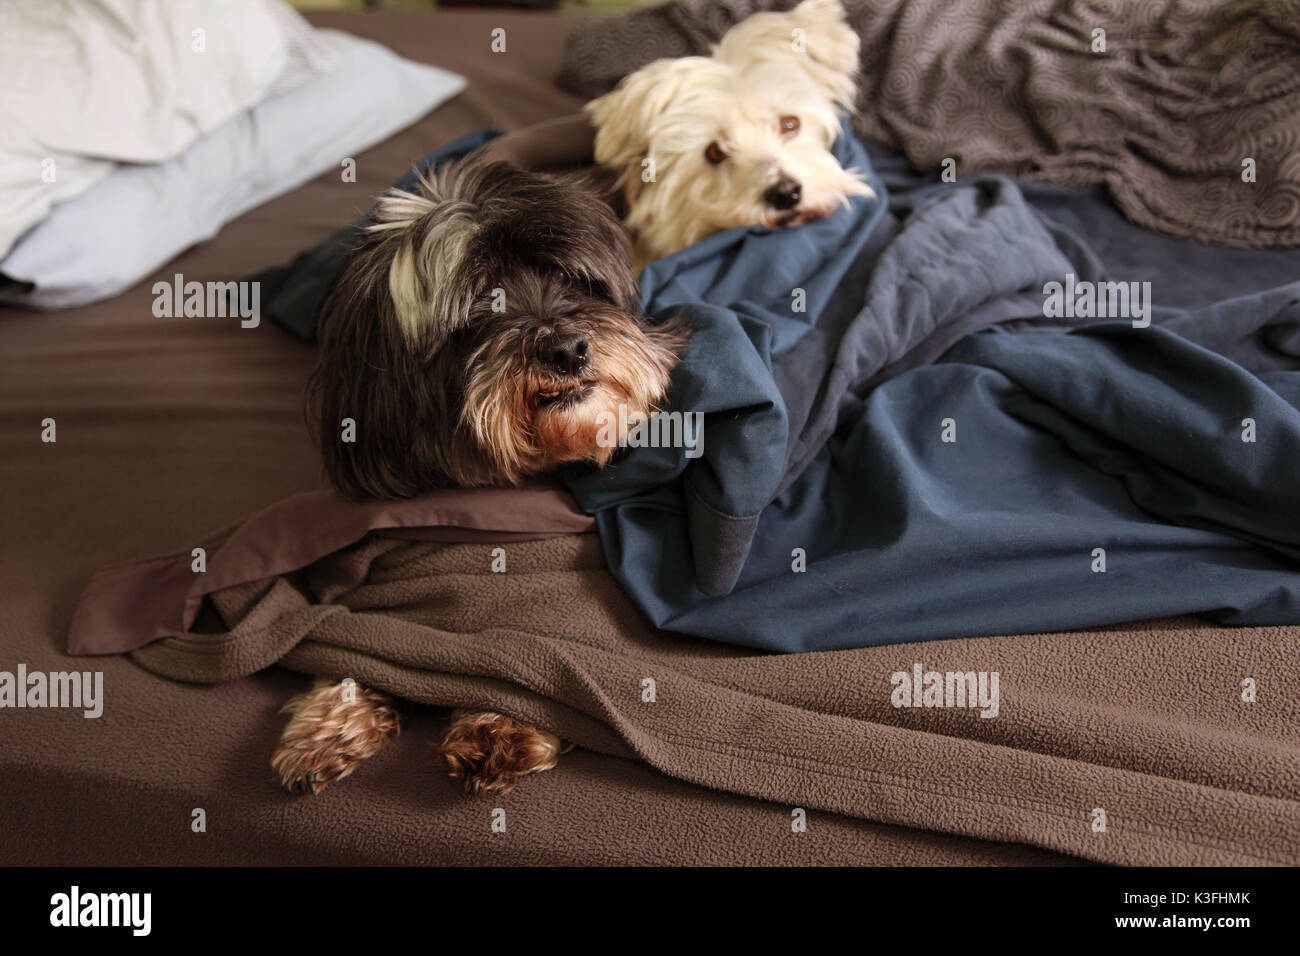 two dogs sleep on the bed - Stock Image